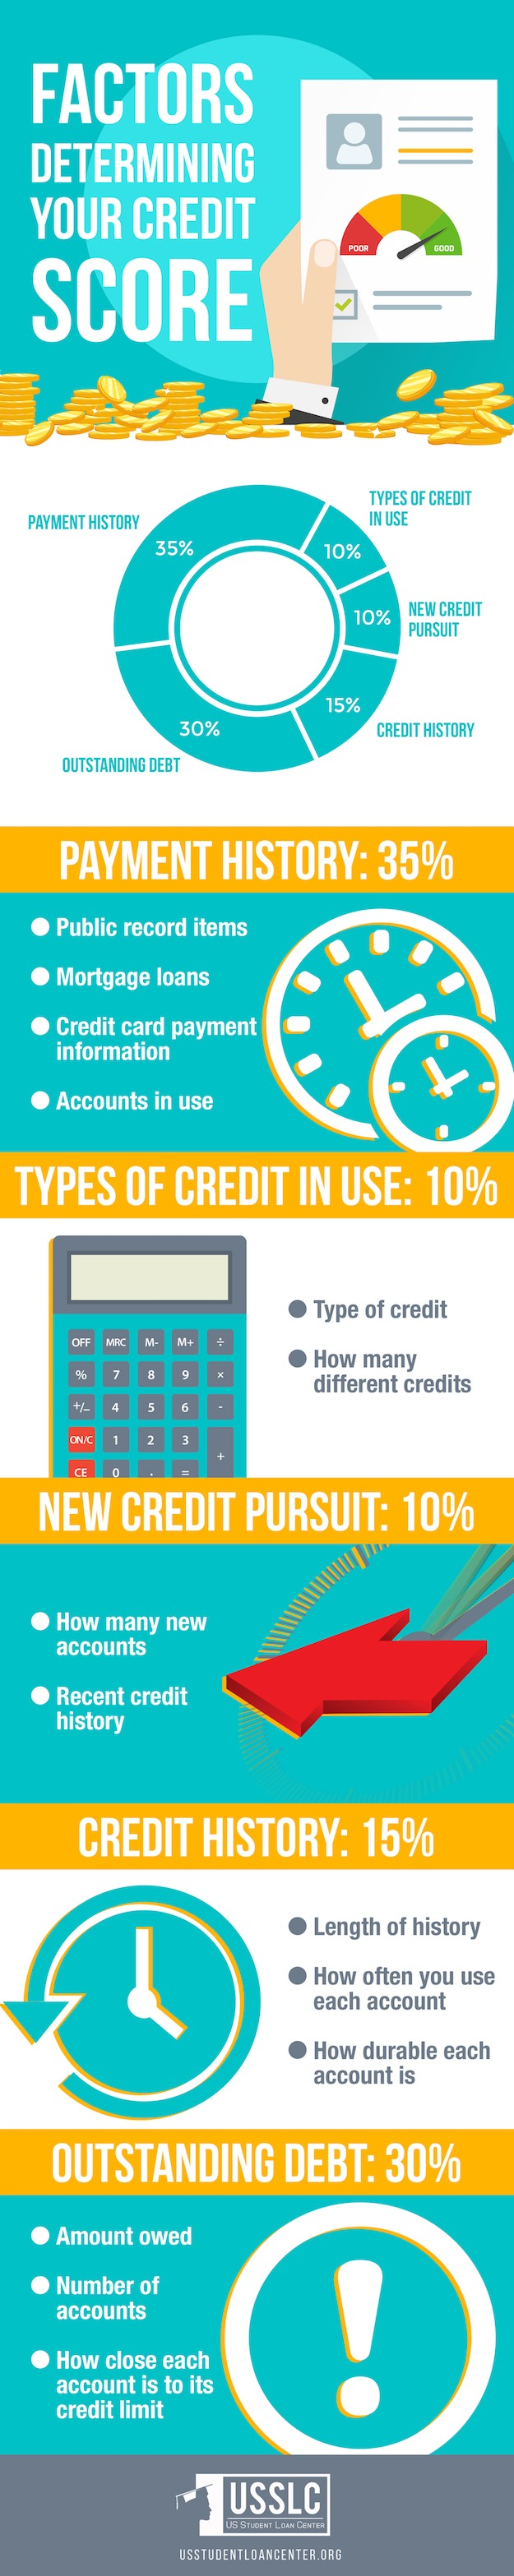 How to Determine Your Credit Score